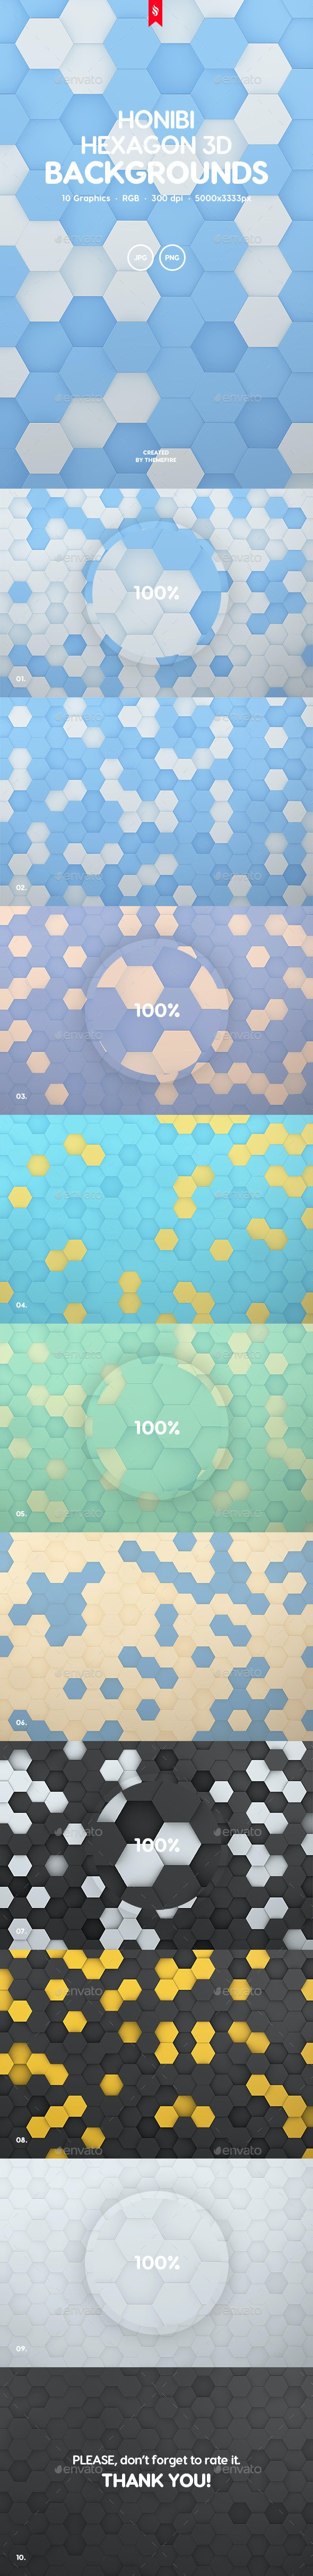 Honibi - Hexagon 3D Background Set - Abstract Backgrounds